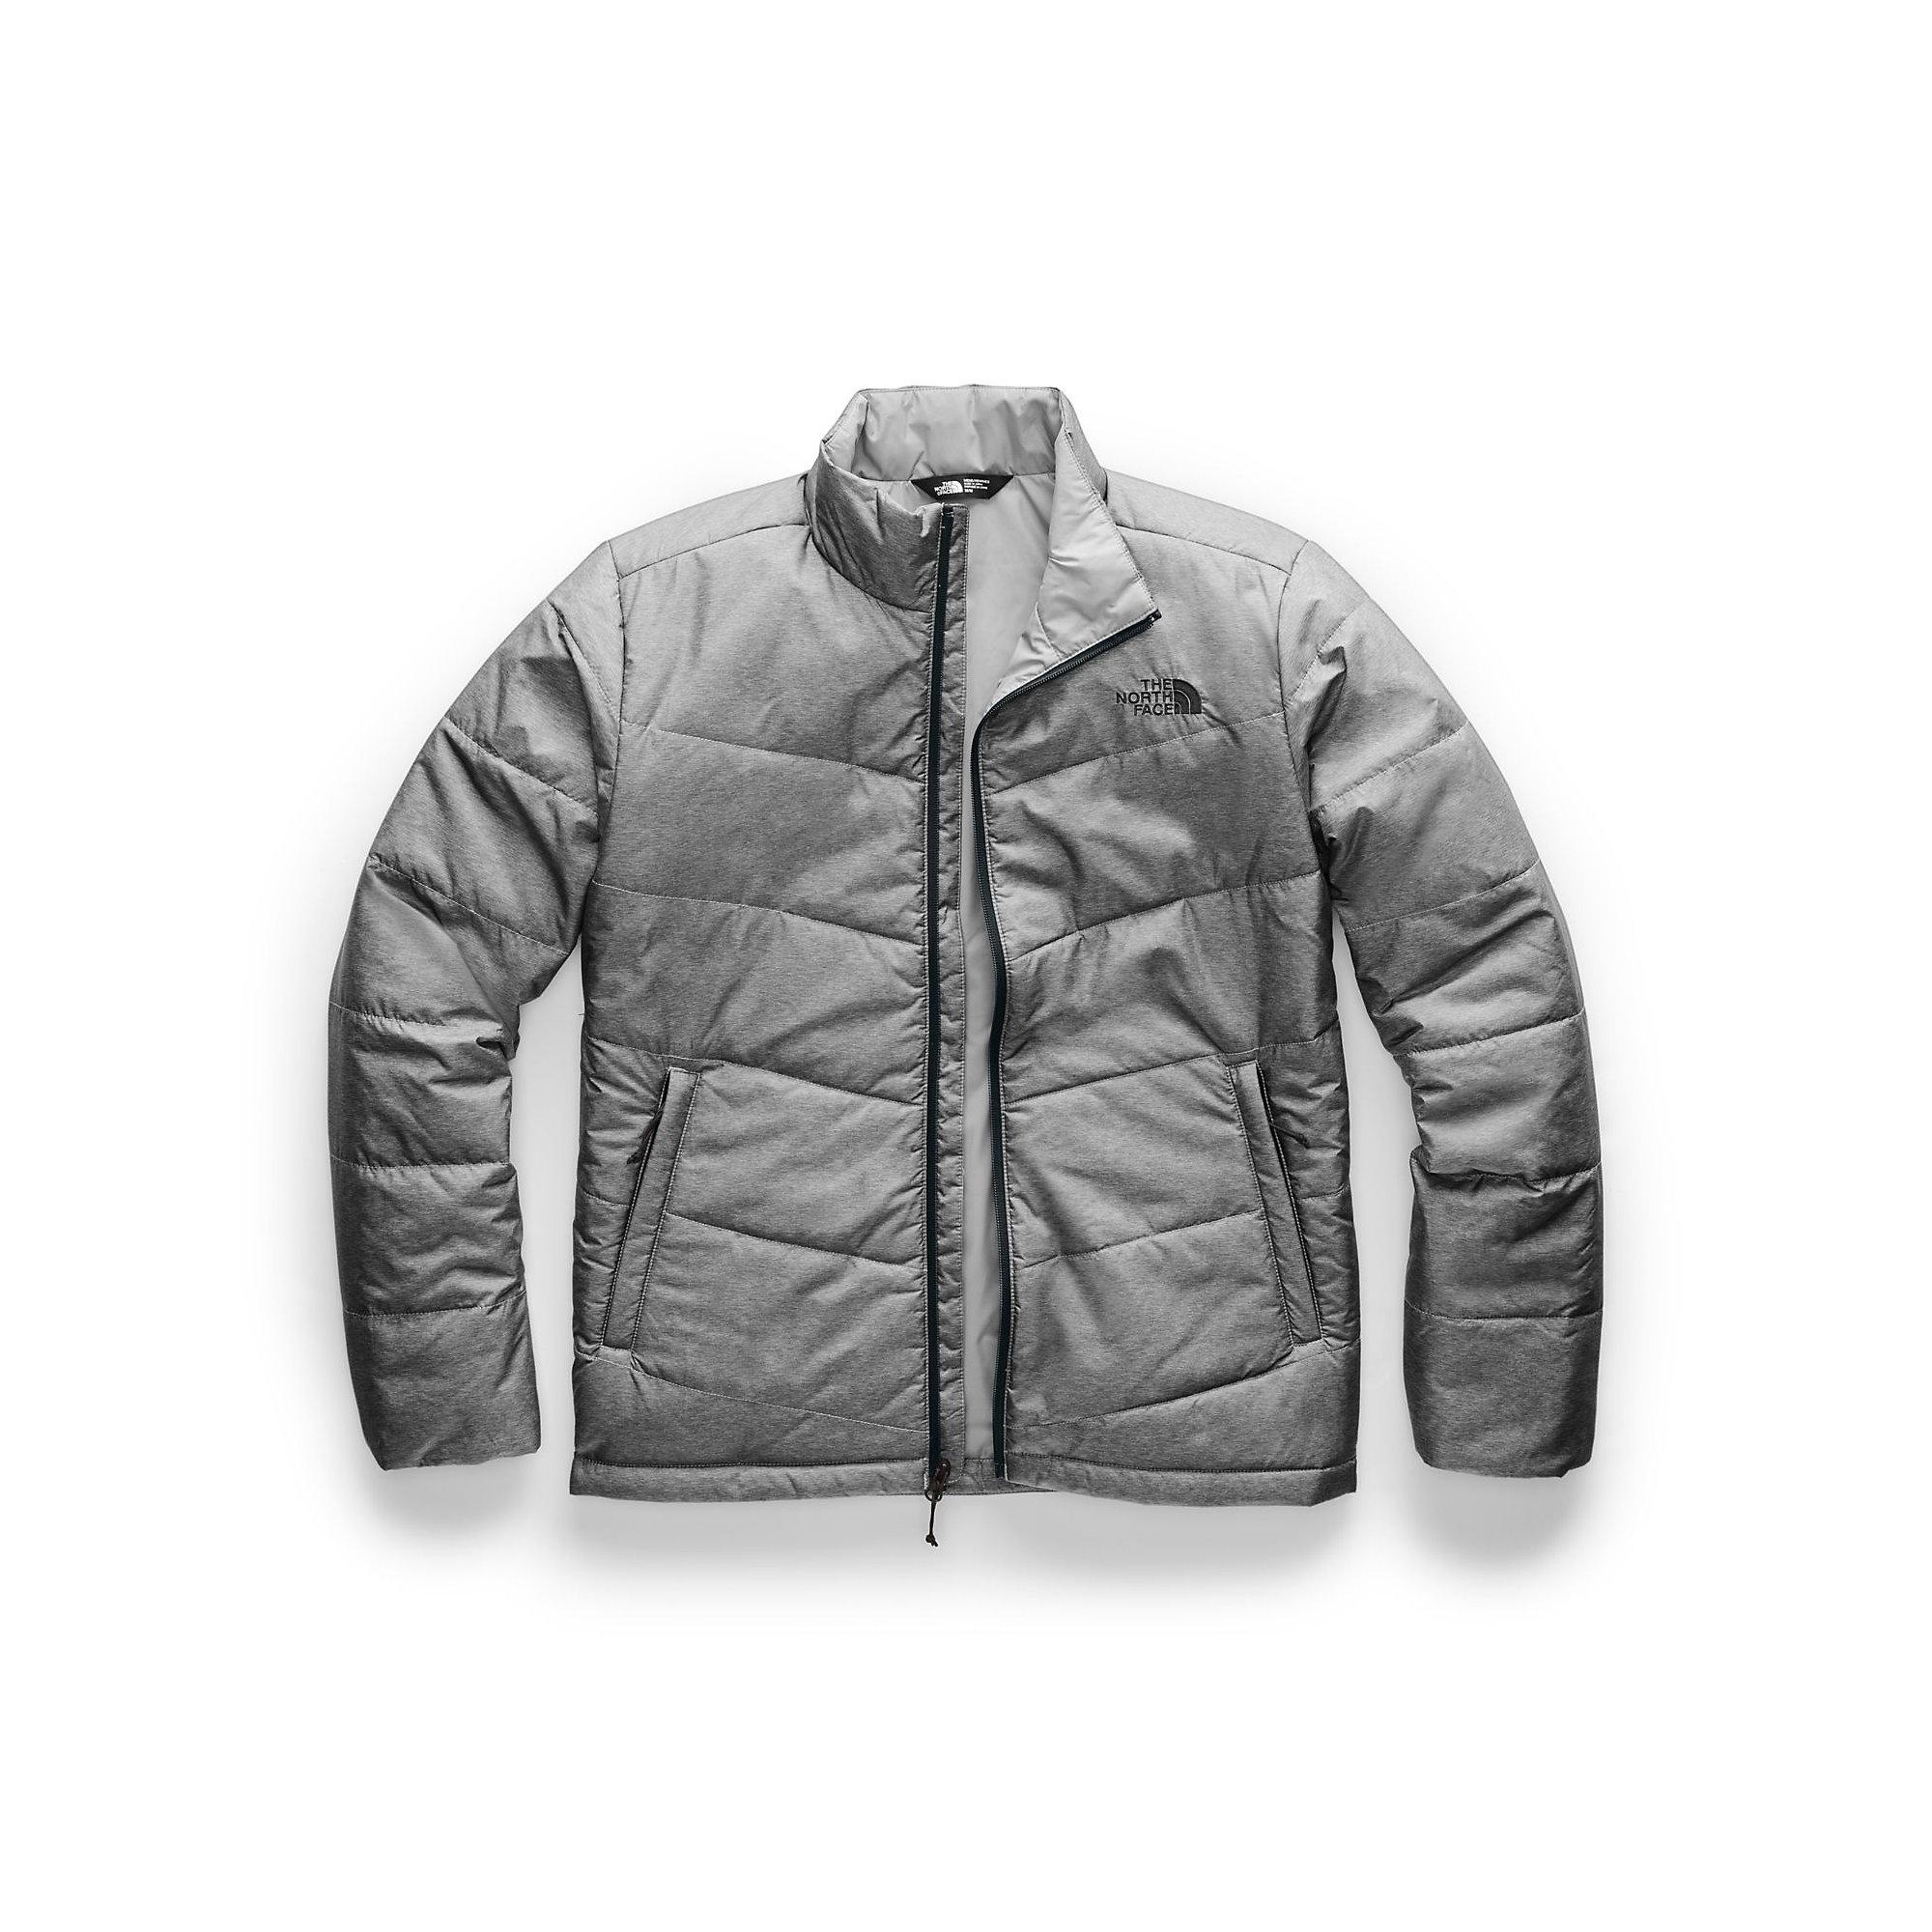 d7e72ff99 The North Face Junction Insulated Jacket in Gray for Men - Lyst